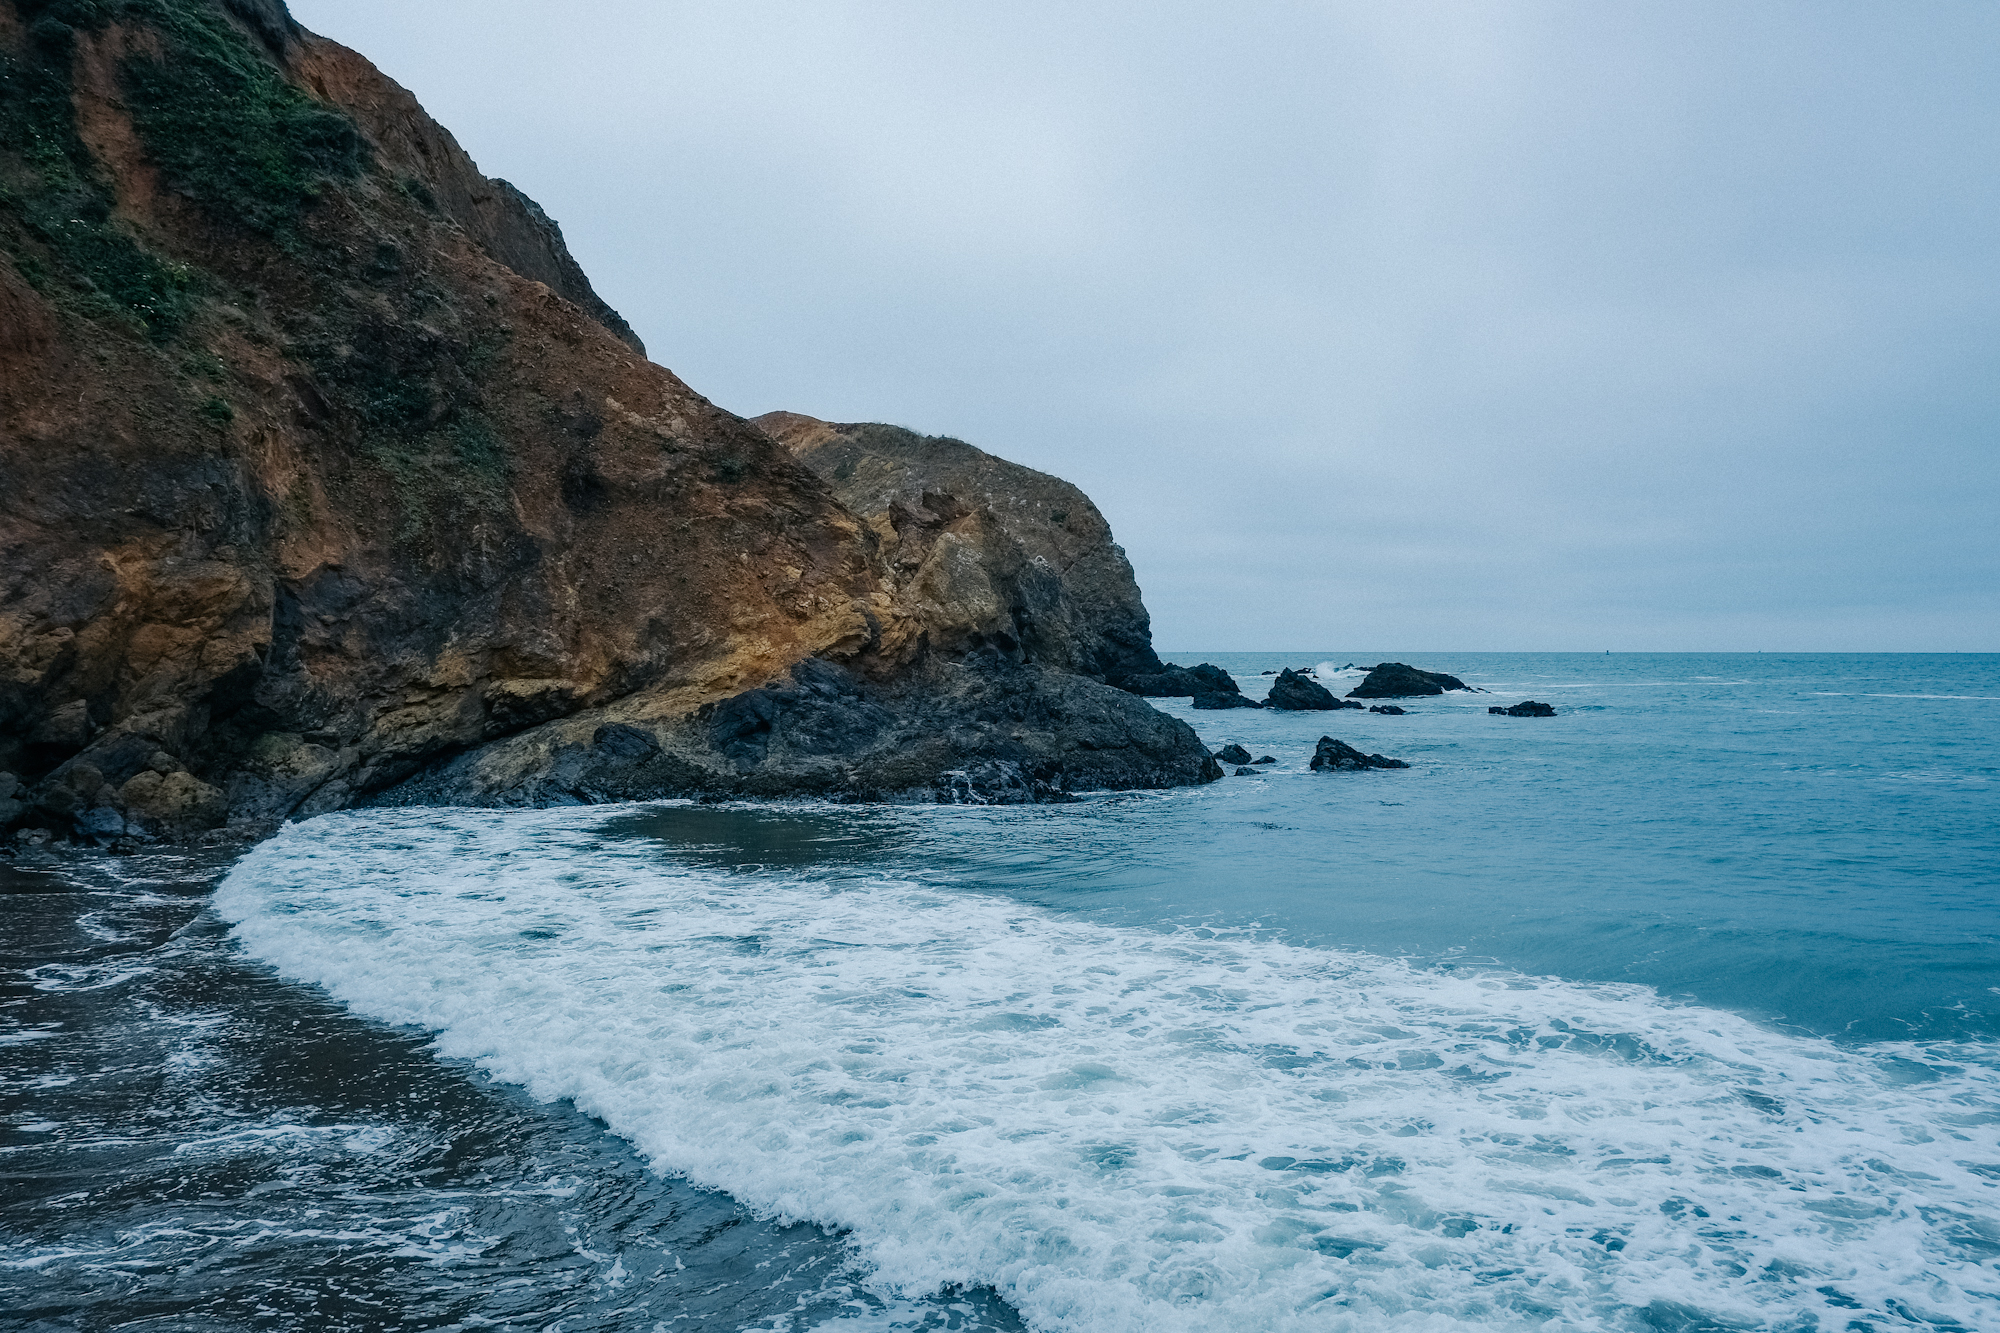 A cove slightly north of Point Bonita. The sound of the waves on the rocks here was beautiful.